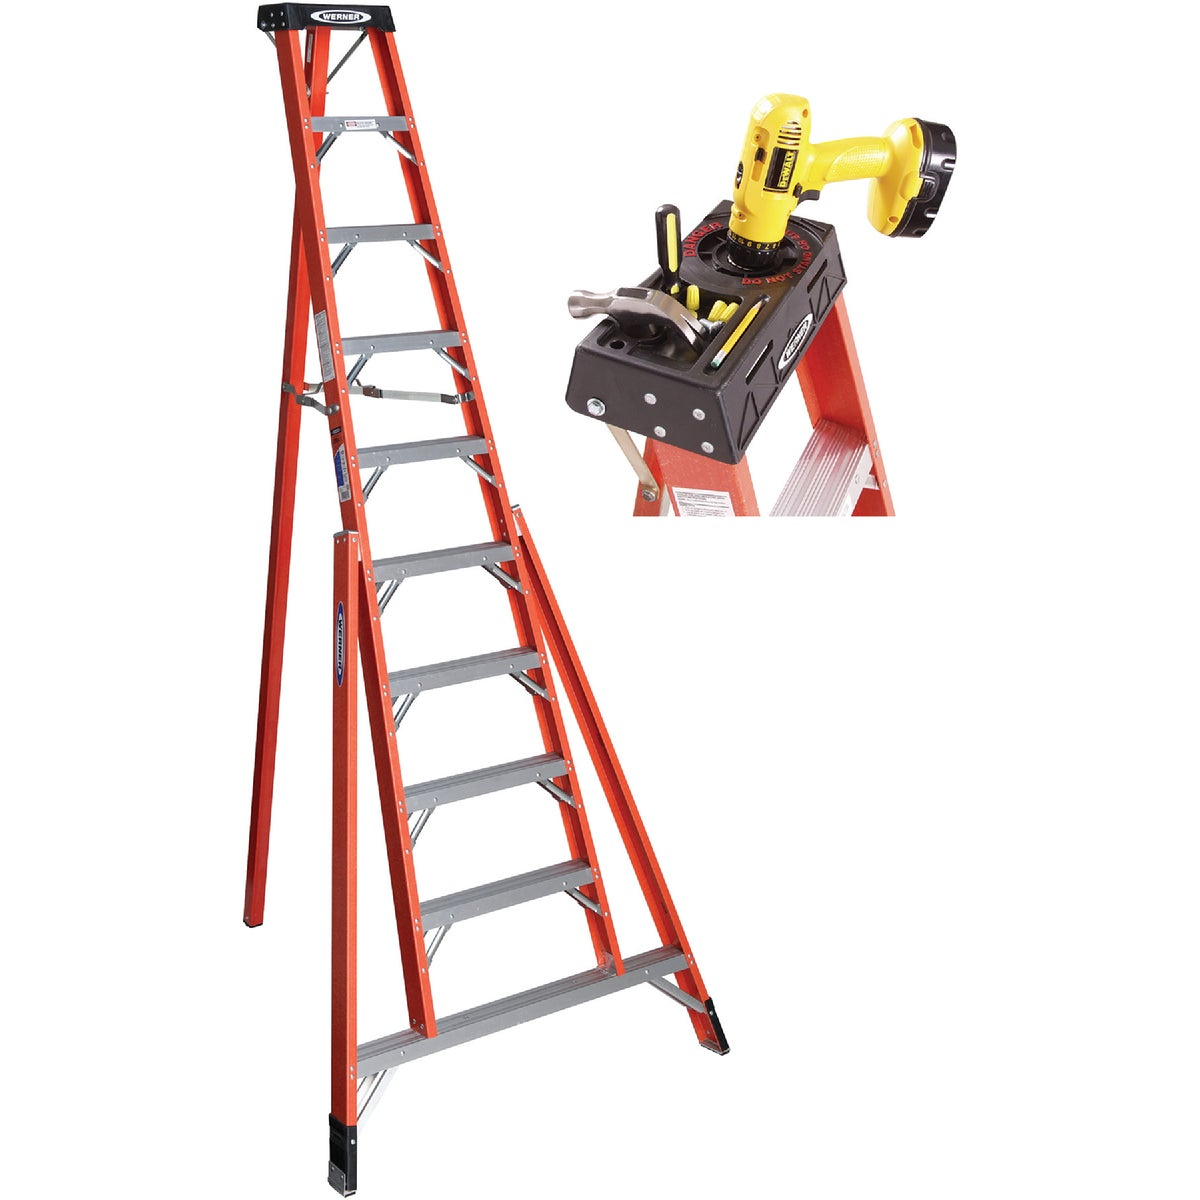 10' FBGL TRIPOD LADDER - FTP6210 by Werner Ladder